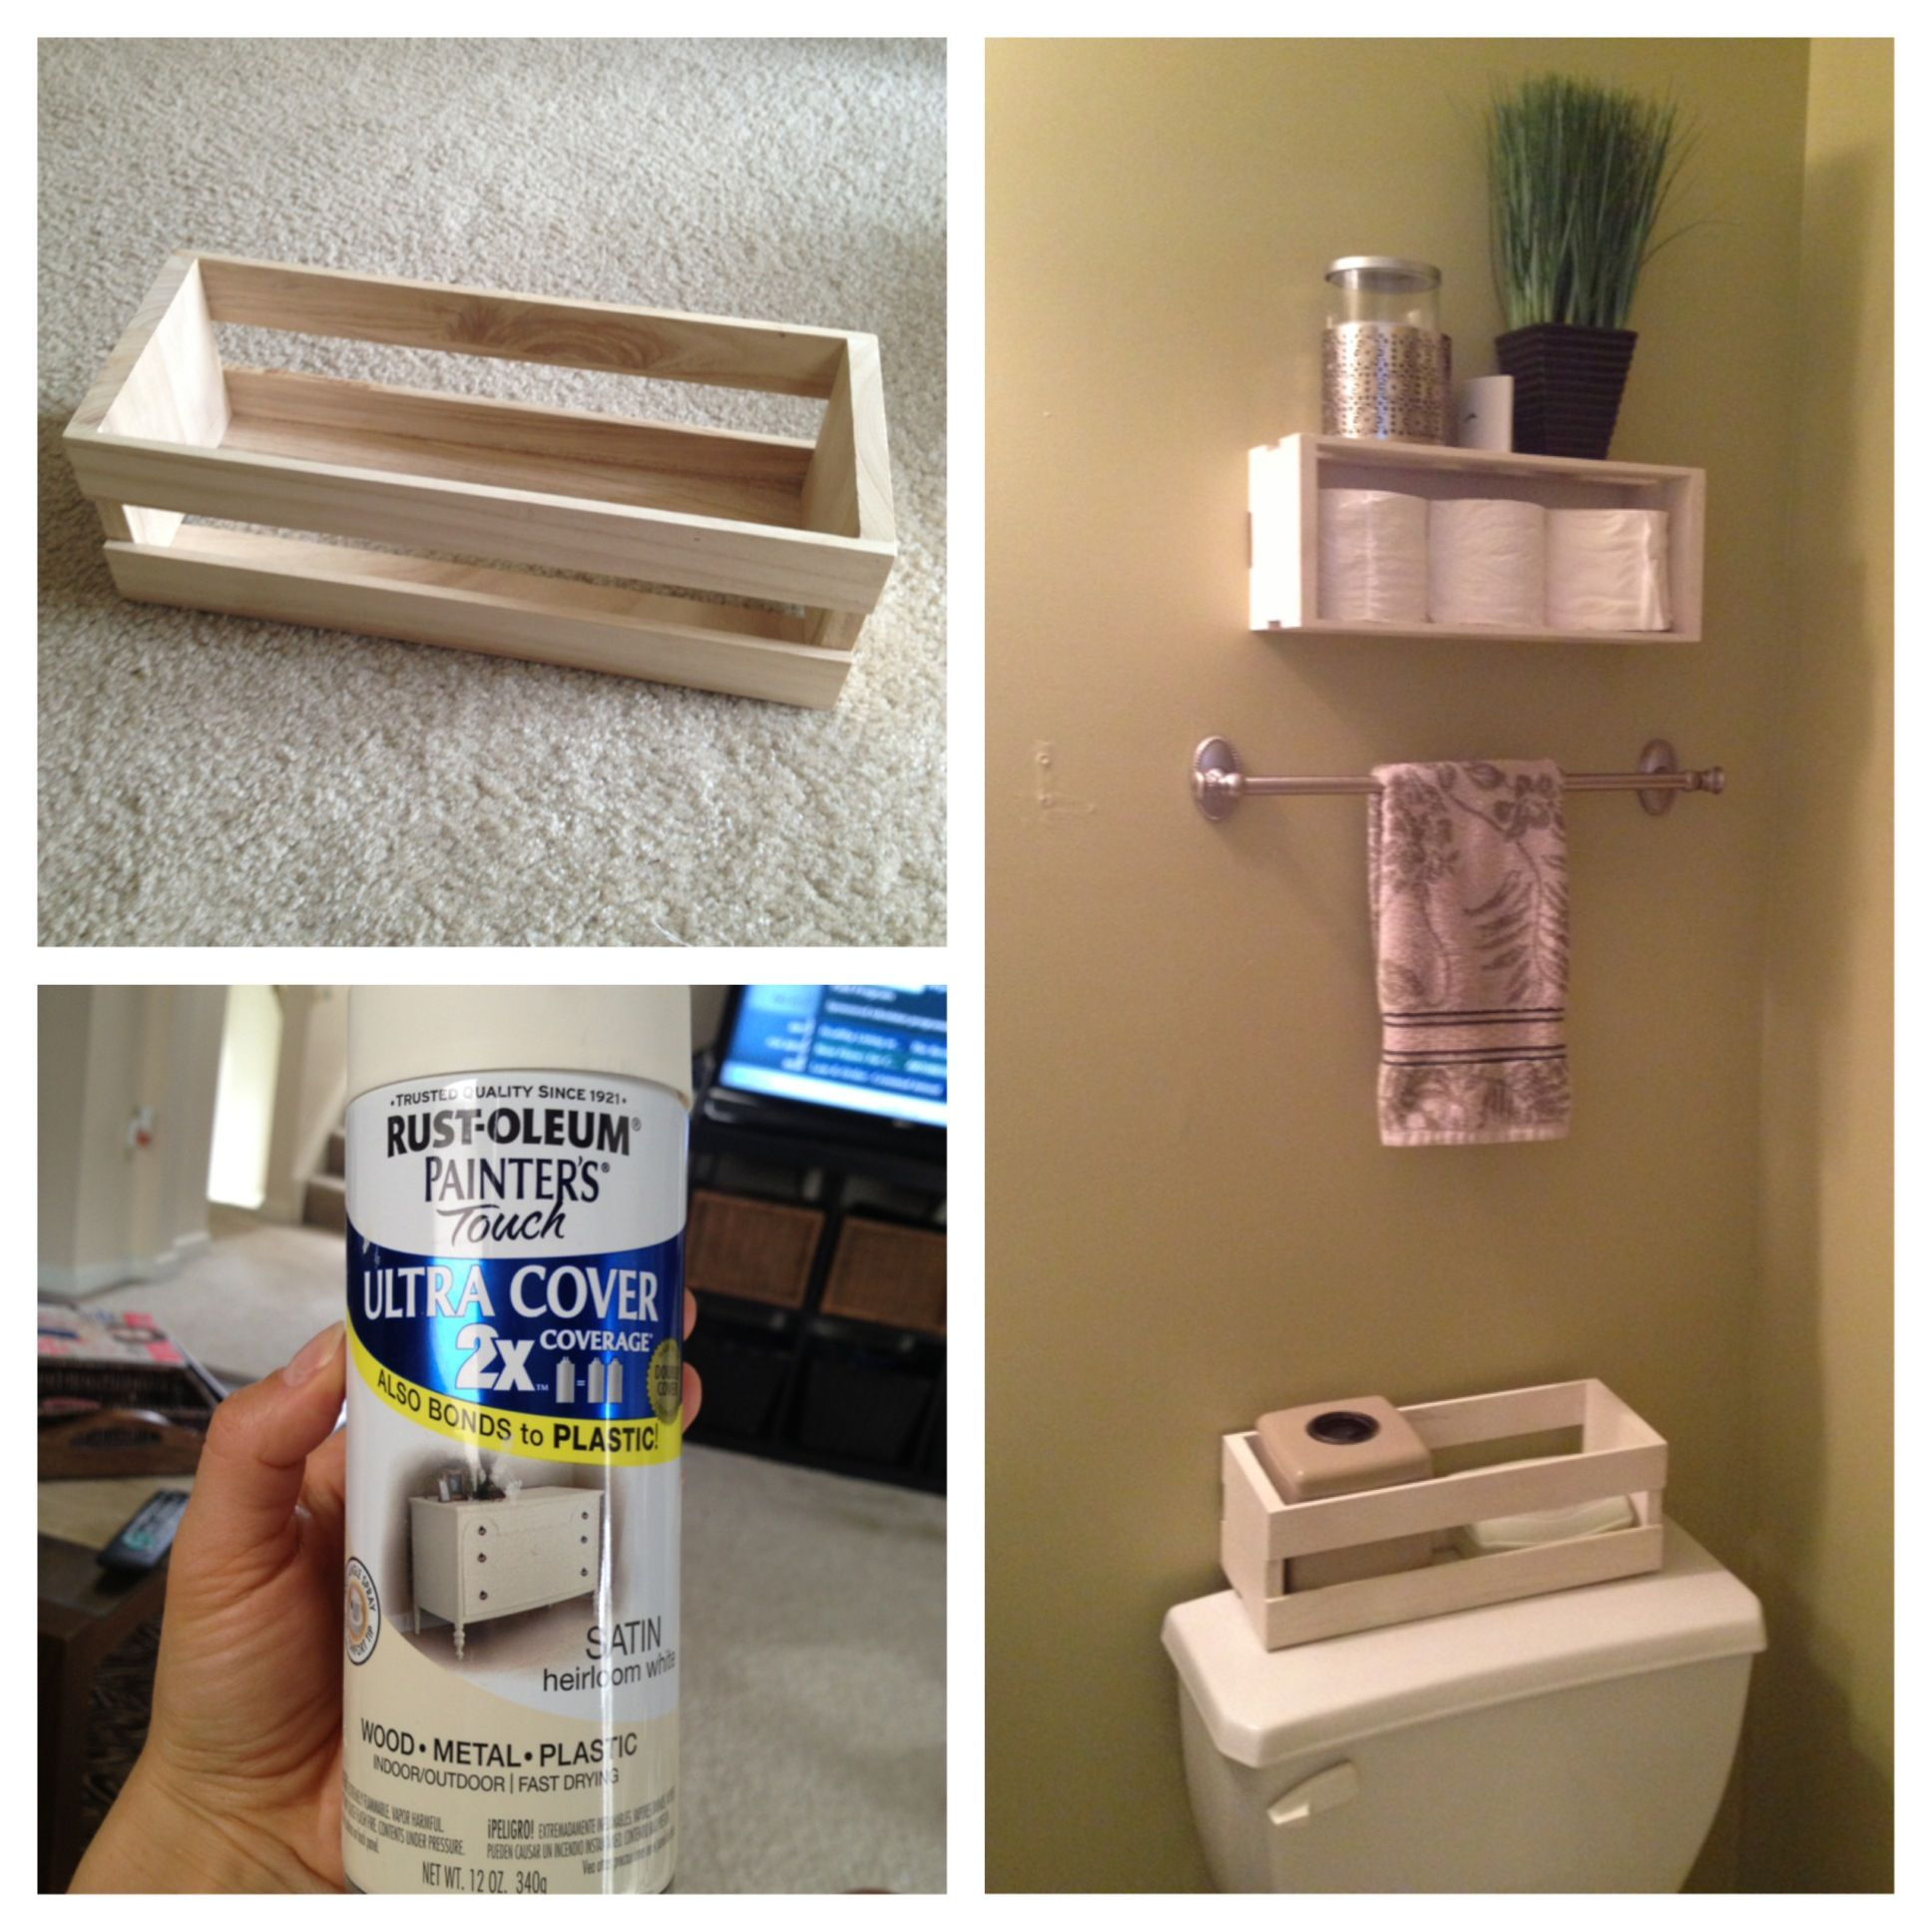 What Is The Best Paint To Use In A Bathroom: Two Small Wooden Crates From Michaels, A Can Of Spray